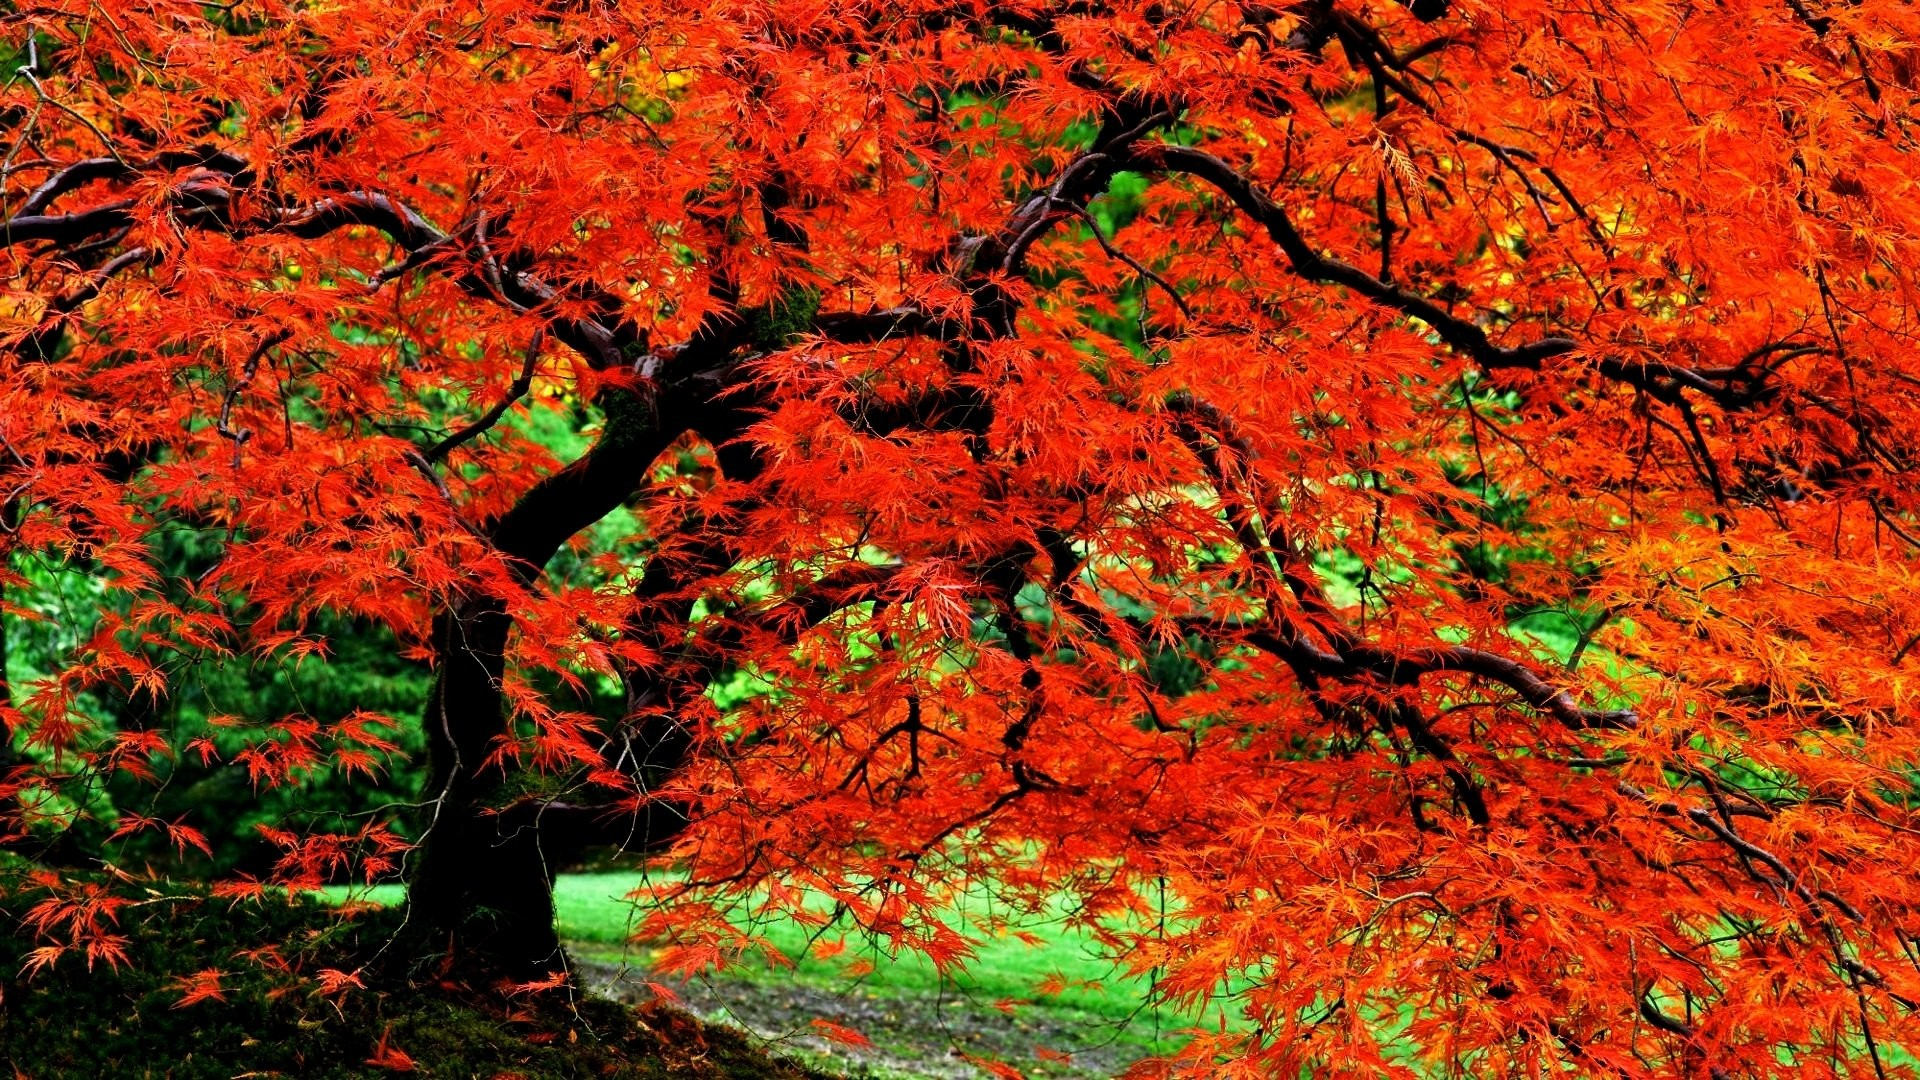 Earth – Tree Nature Fall Foliage Red Close-Up Leaf Garden Japanese Wallpaper